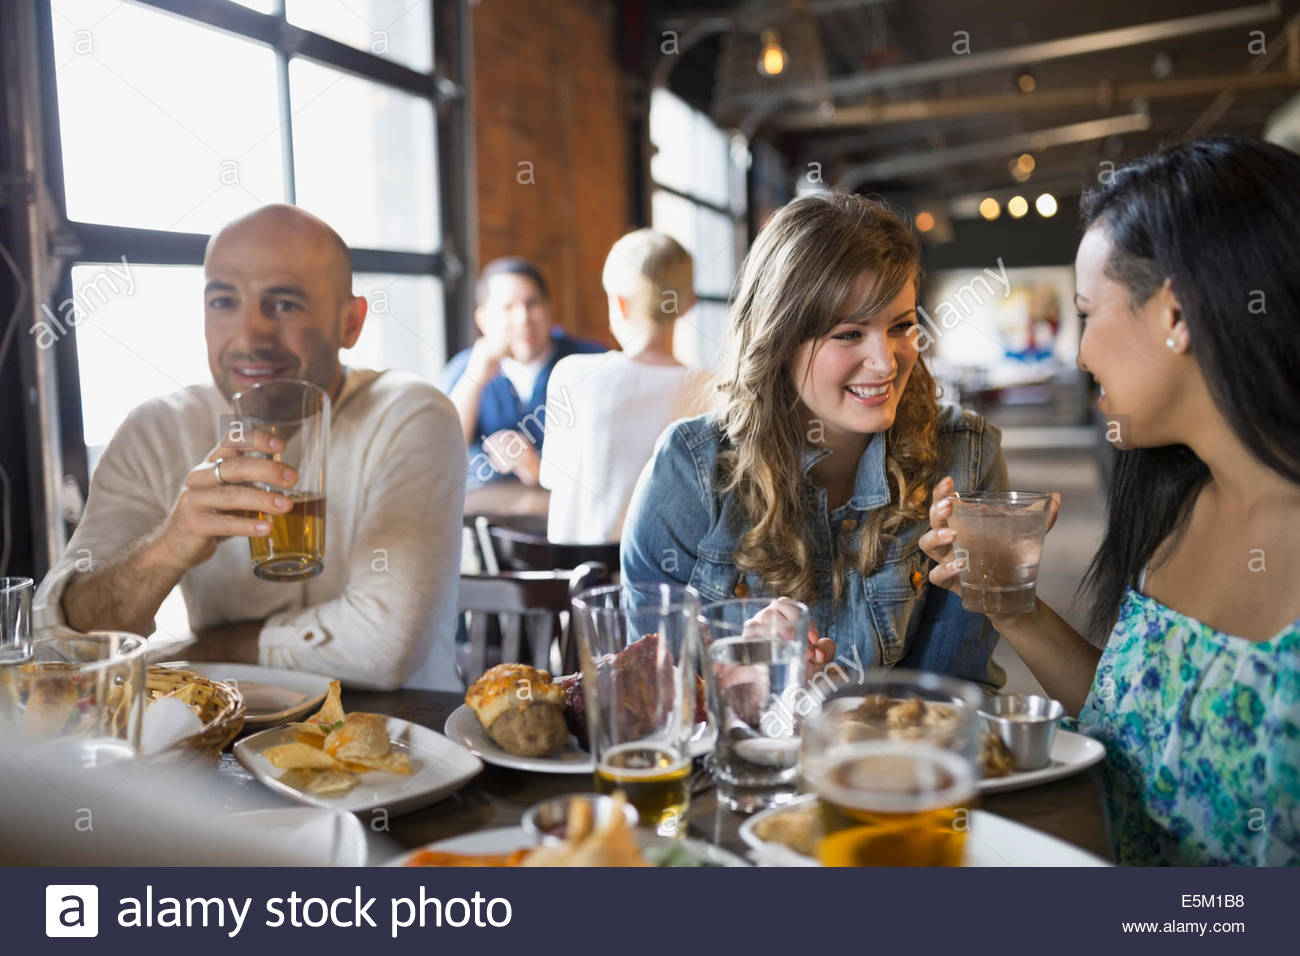 Friends talking and eating in pub - Stock Image